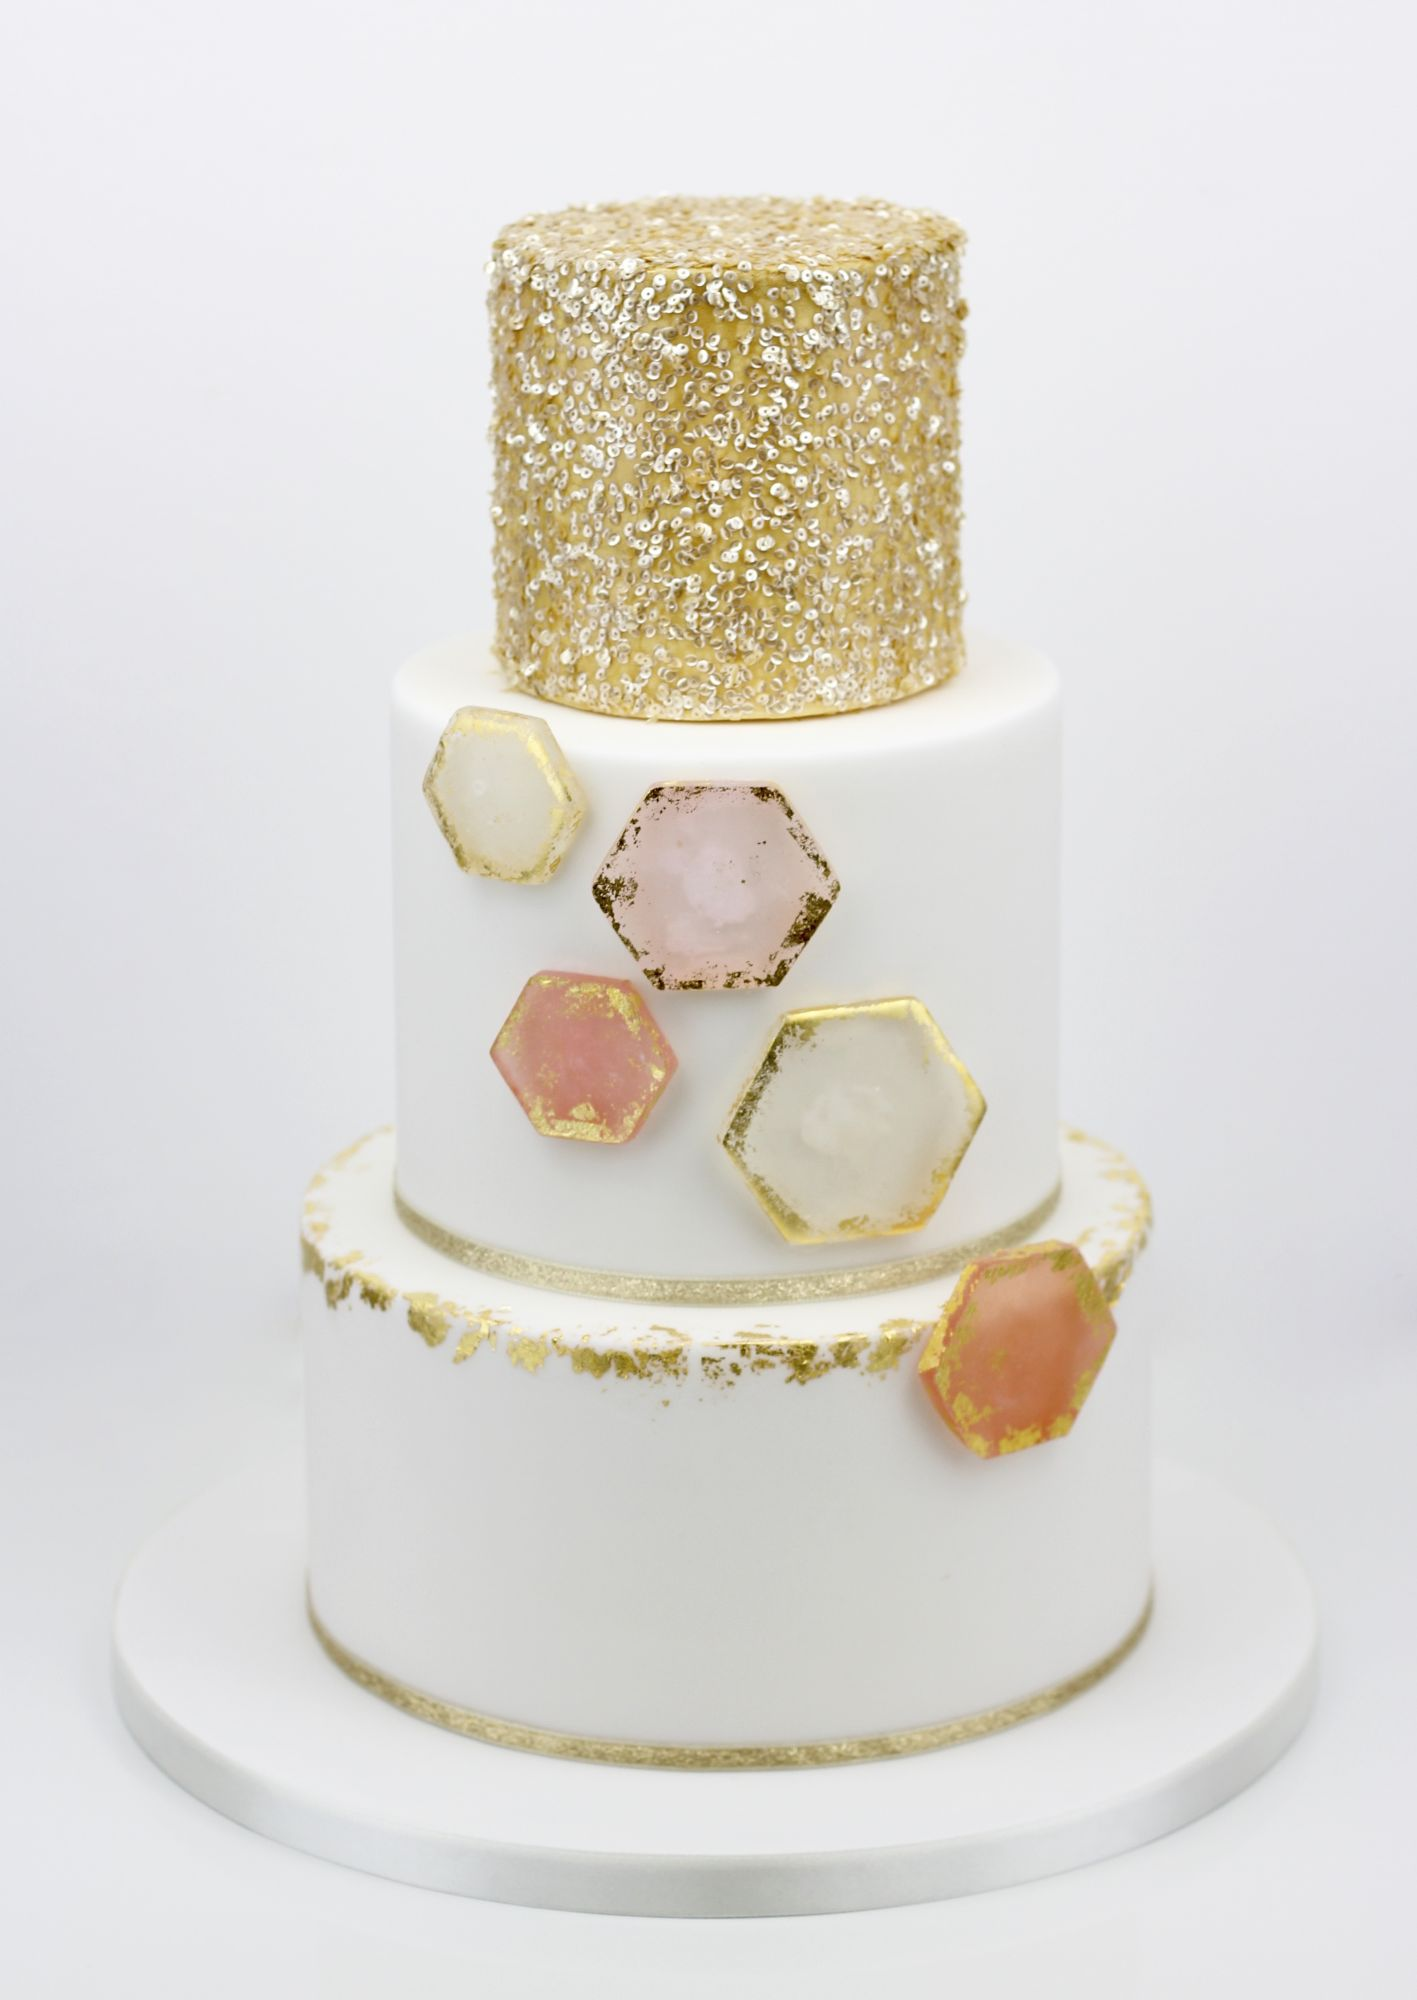 Gold edible sequins with sugar gold leaf hexagons  wedding cake